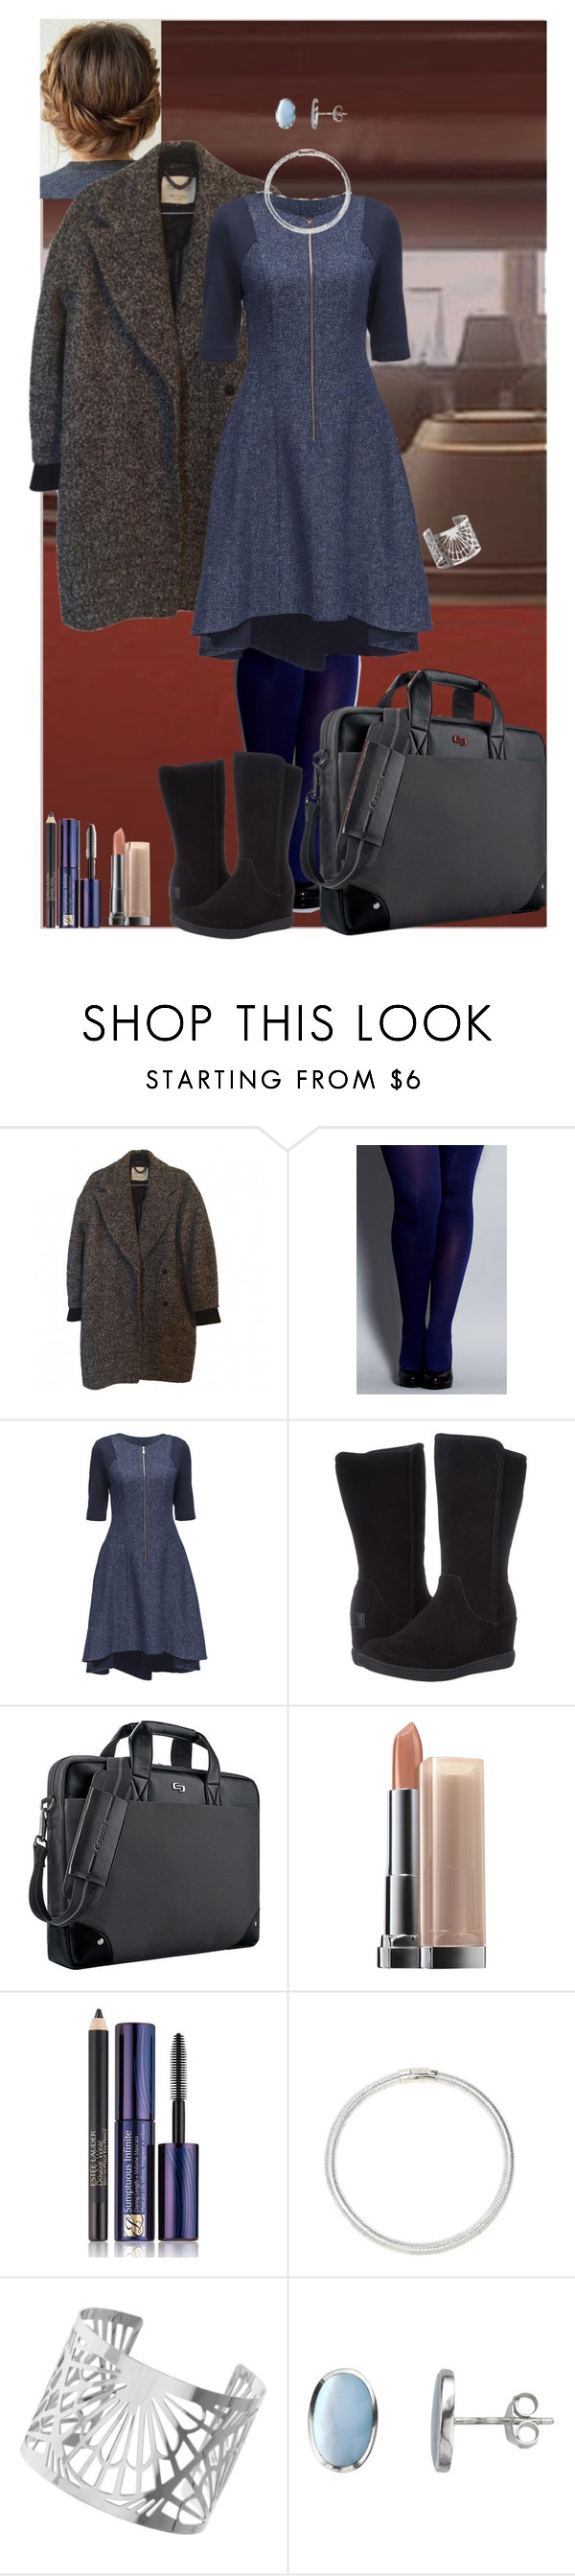 """""""Maia (work clothes)"""" by shulabond on Polyvore featuring Topshop, City Chic, Lattori, Skechers, Solo, Maybelline, Estée Lauder, Miss Selfridge and Nina B"""